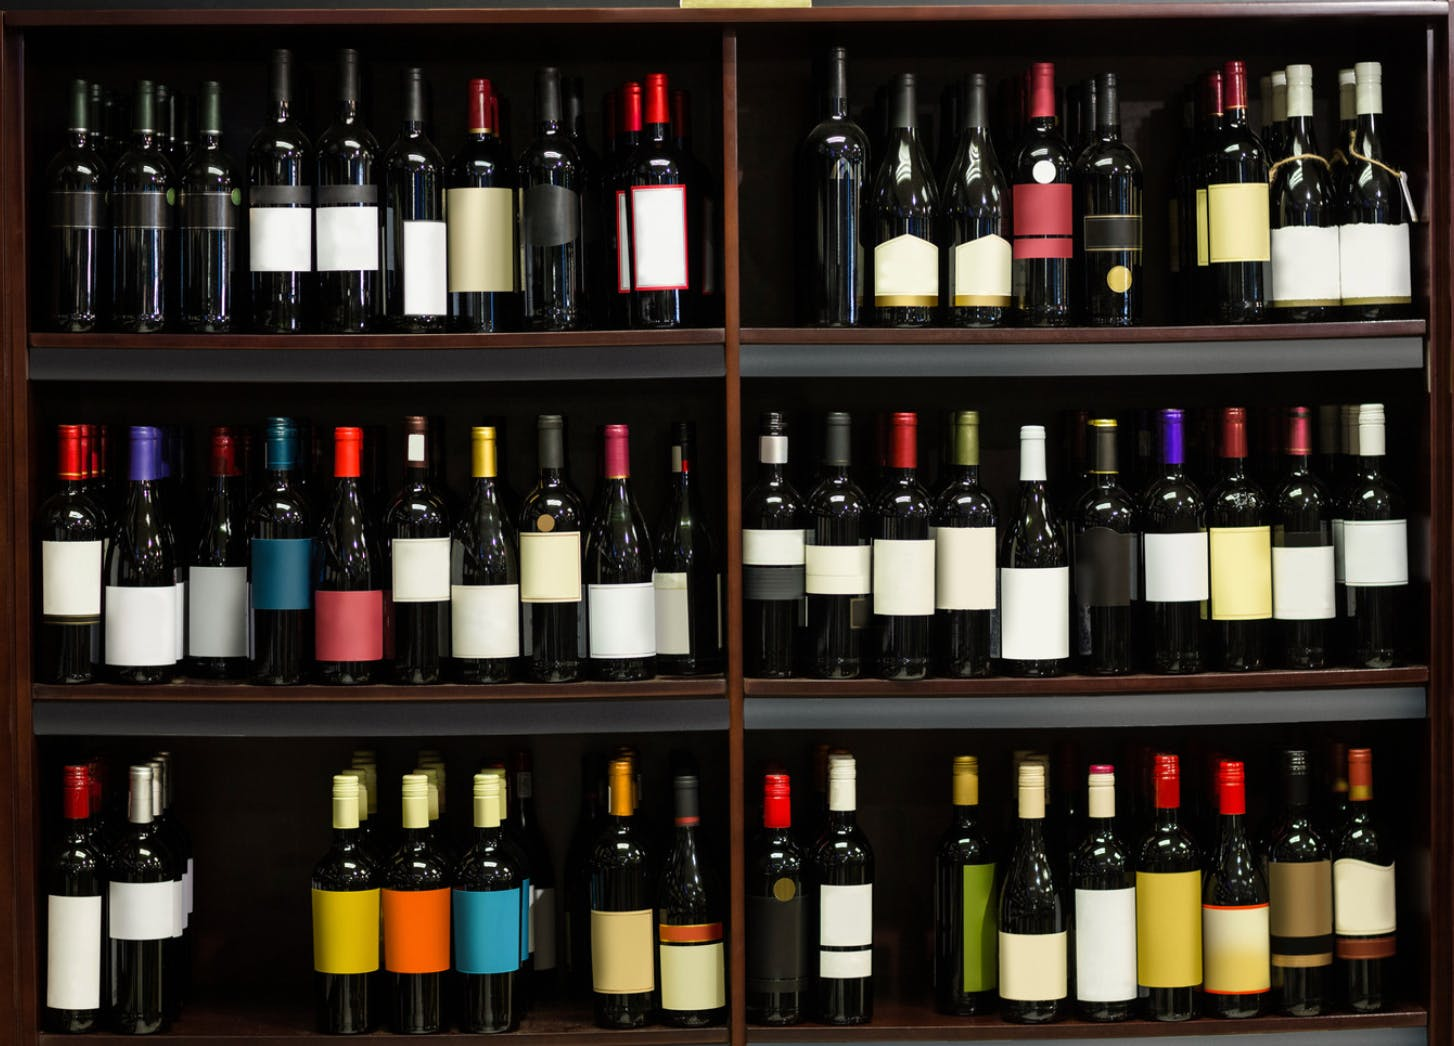 adult beverage trends in retail and cpg